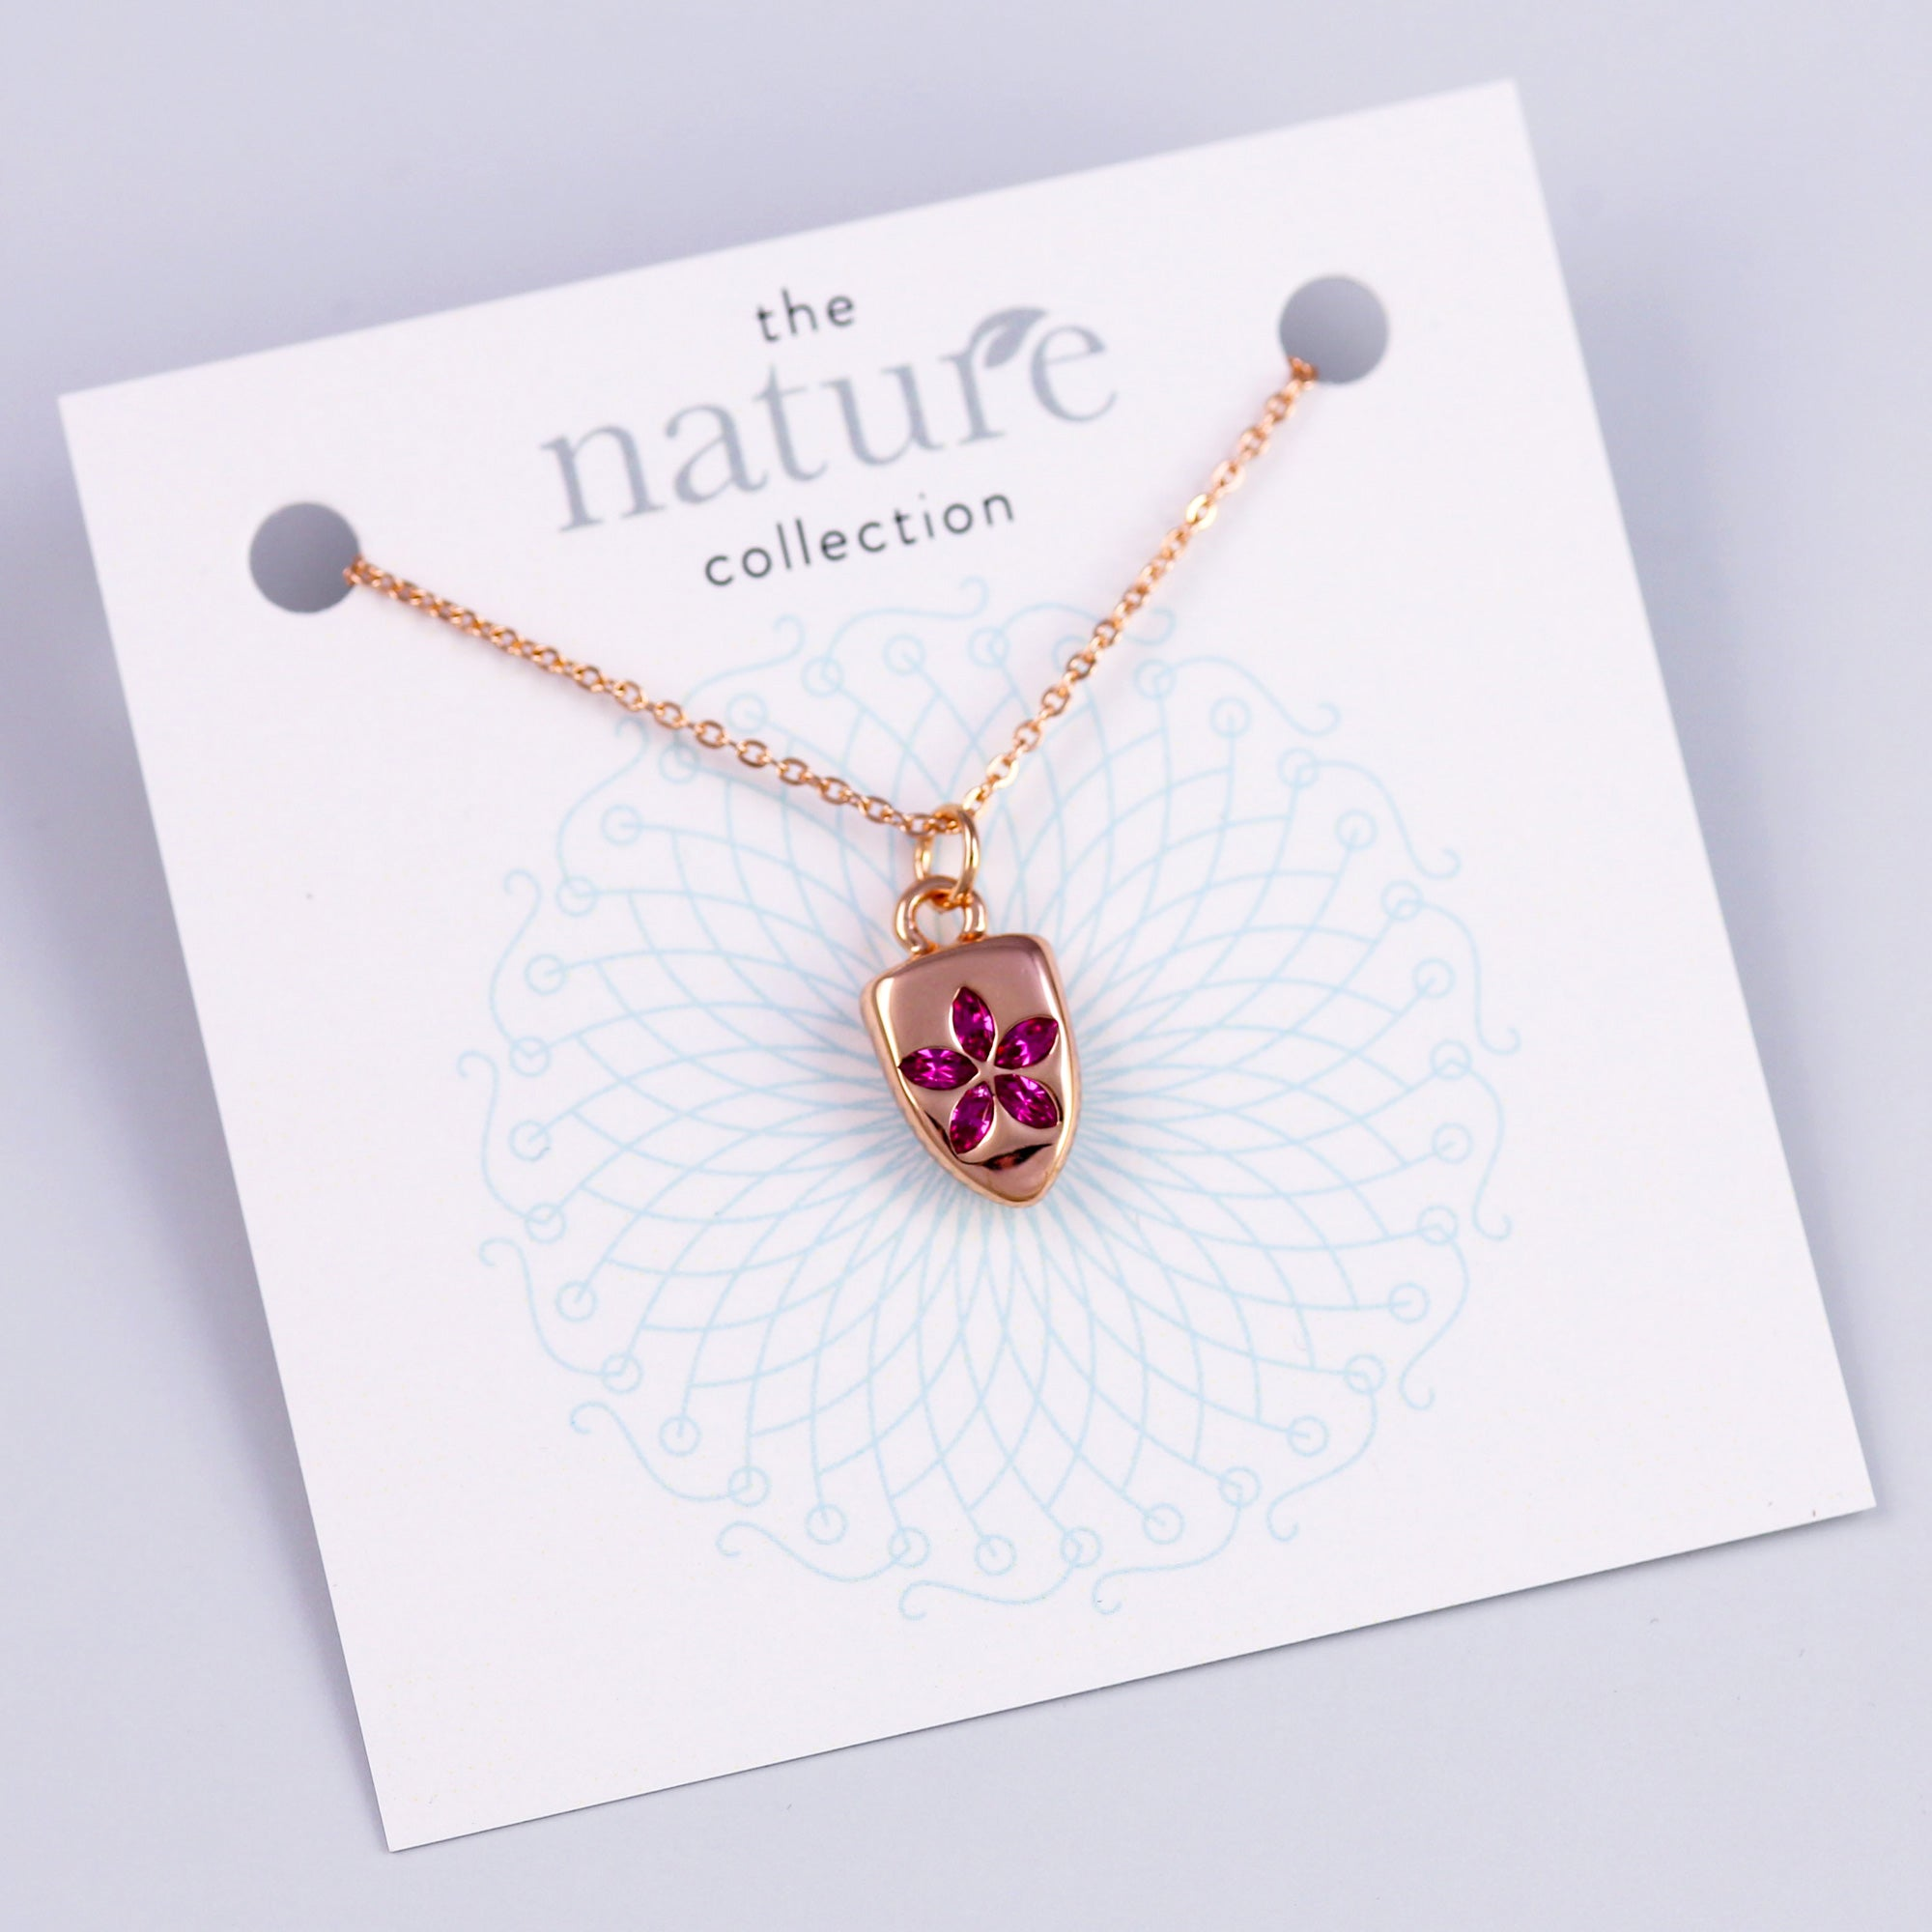 Rose Gold Pink Flower Necklace Nature Collection